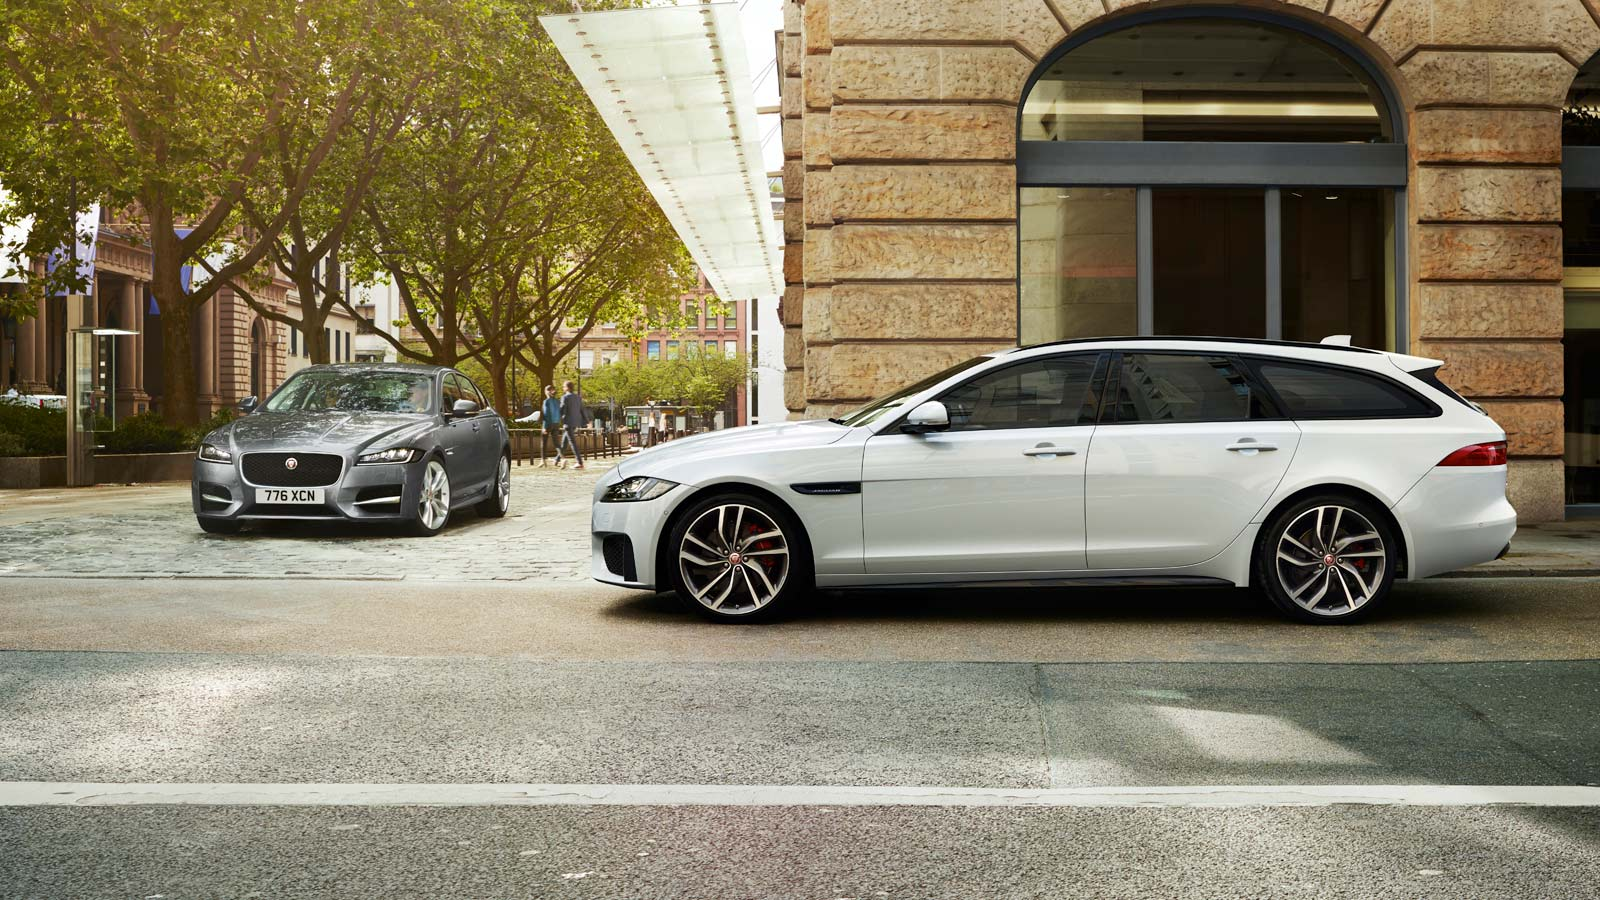 White Jaguar XF Driving By Building